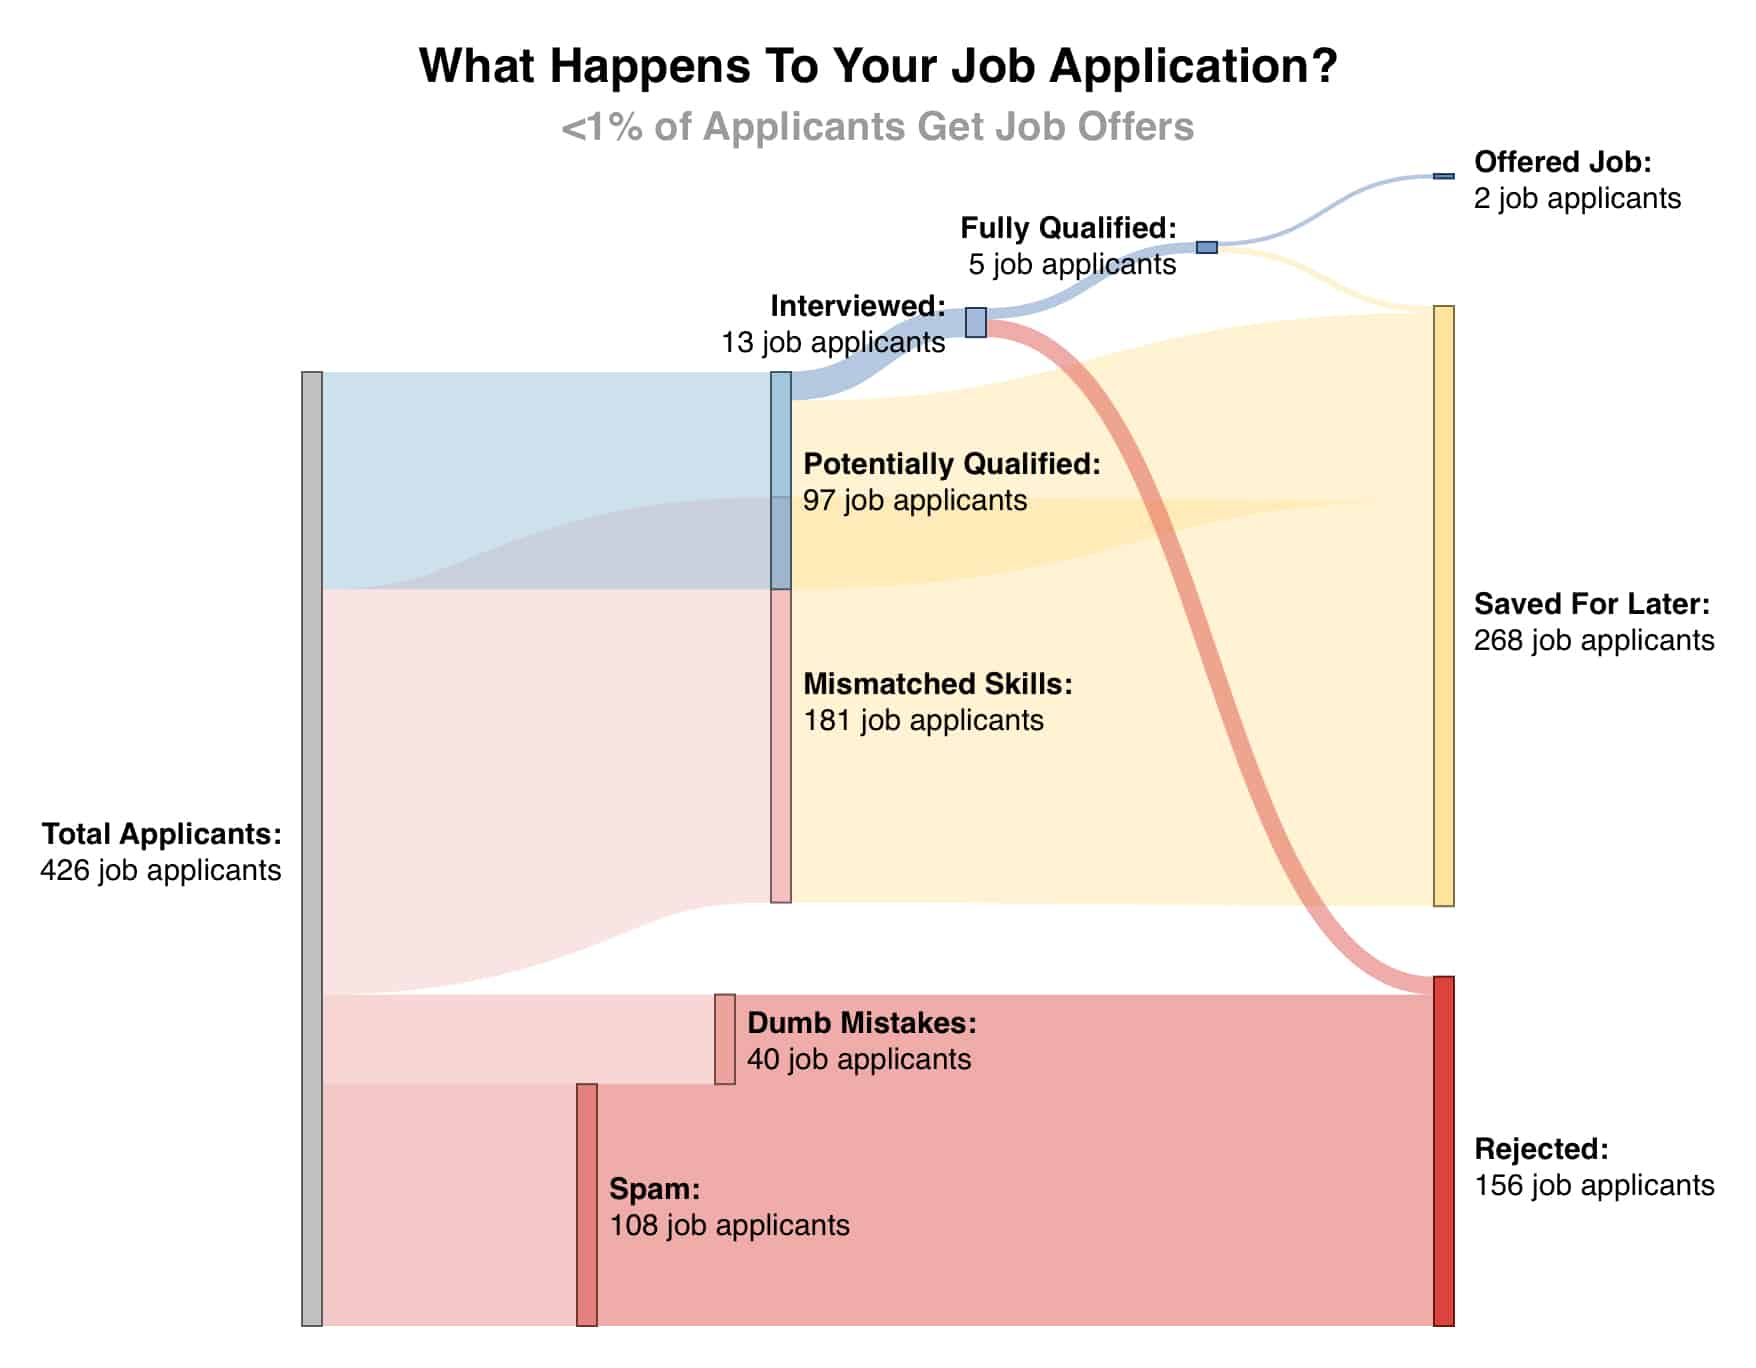 What happens to your job application? < 1% of applicants get job offers.